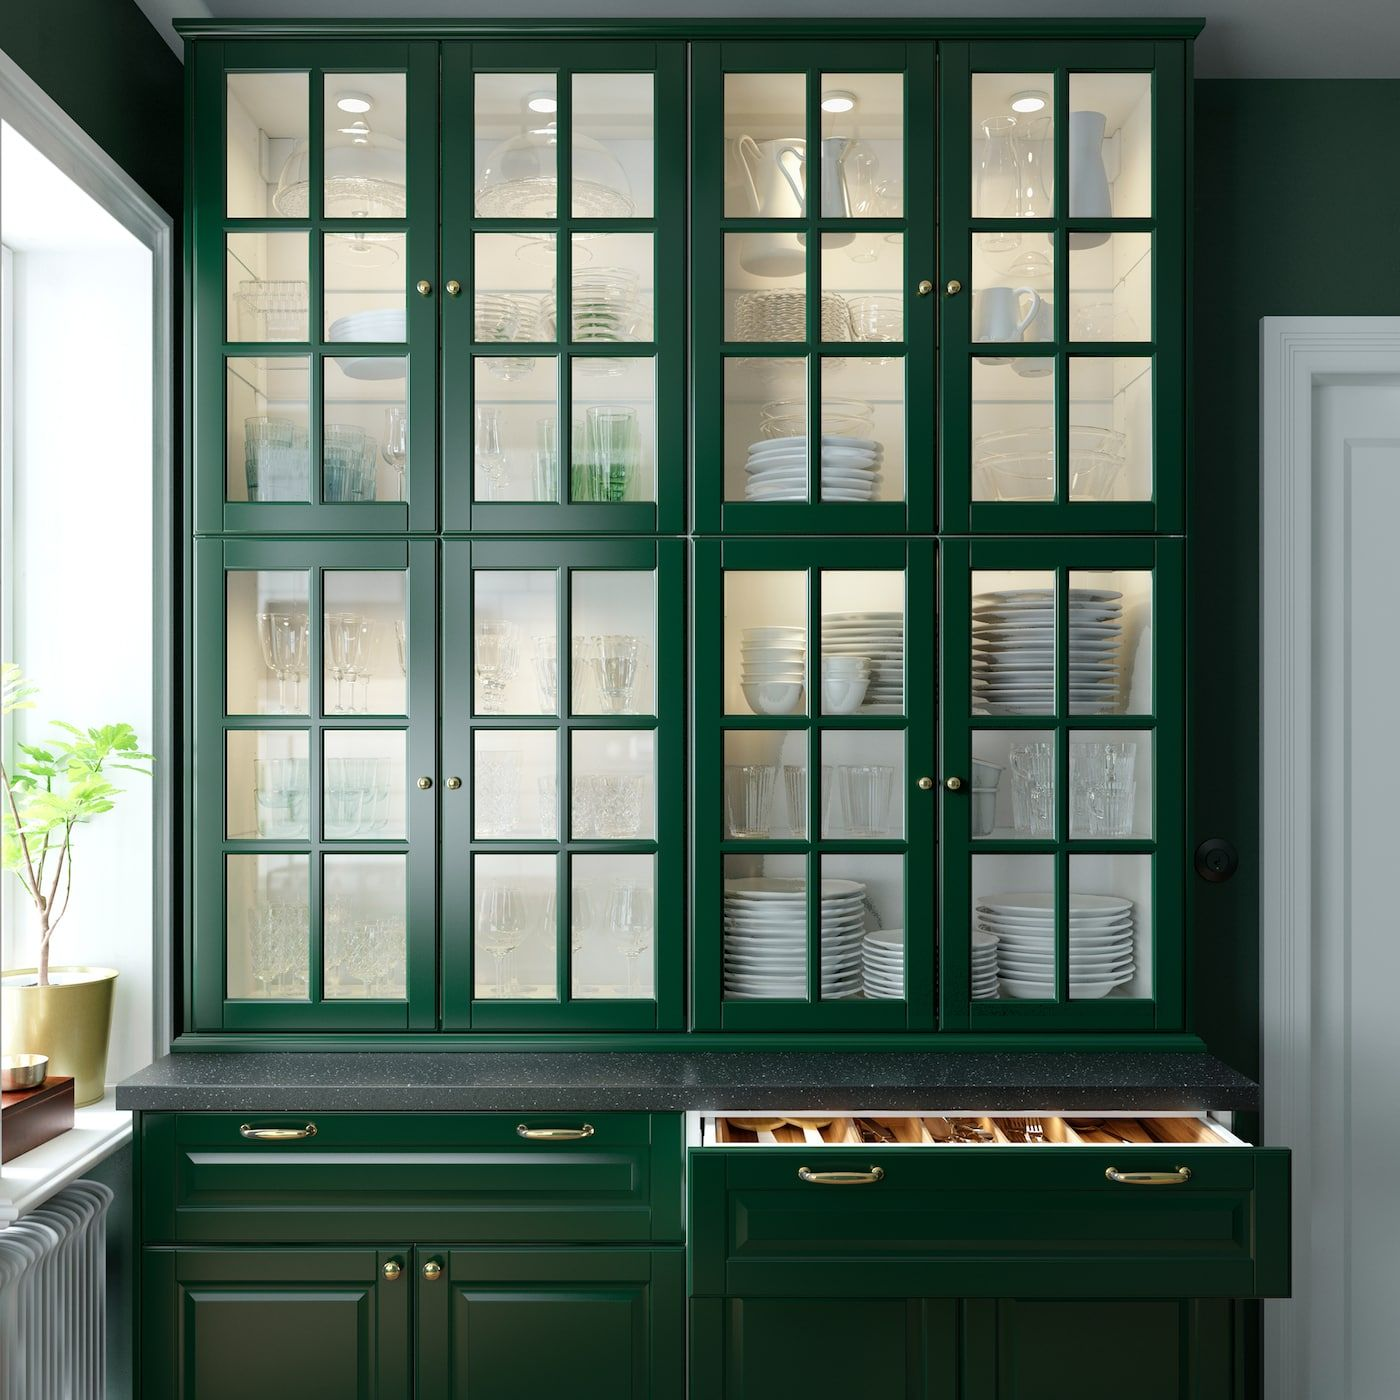 A green and fresh BODBYN kitchen in 2020 | Green kitchen ...